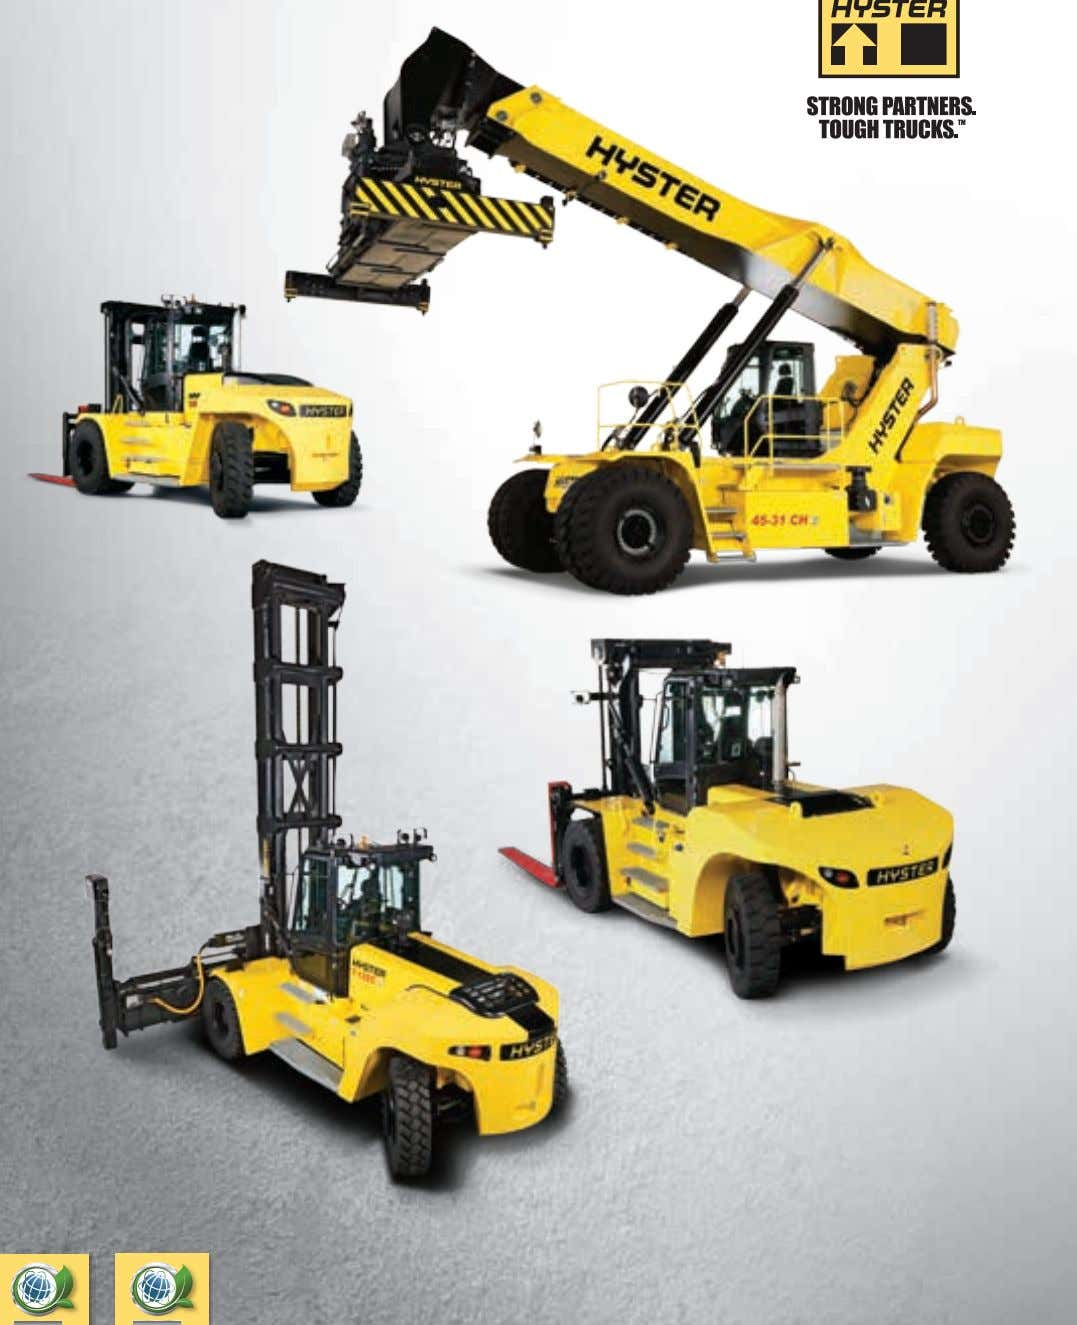 STAGE IIIA STAGE IV HYSTER BIG TRUCKS RANGE OVERVIEW WWW.HYSTER.EU